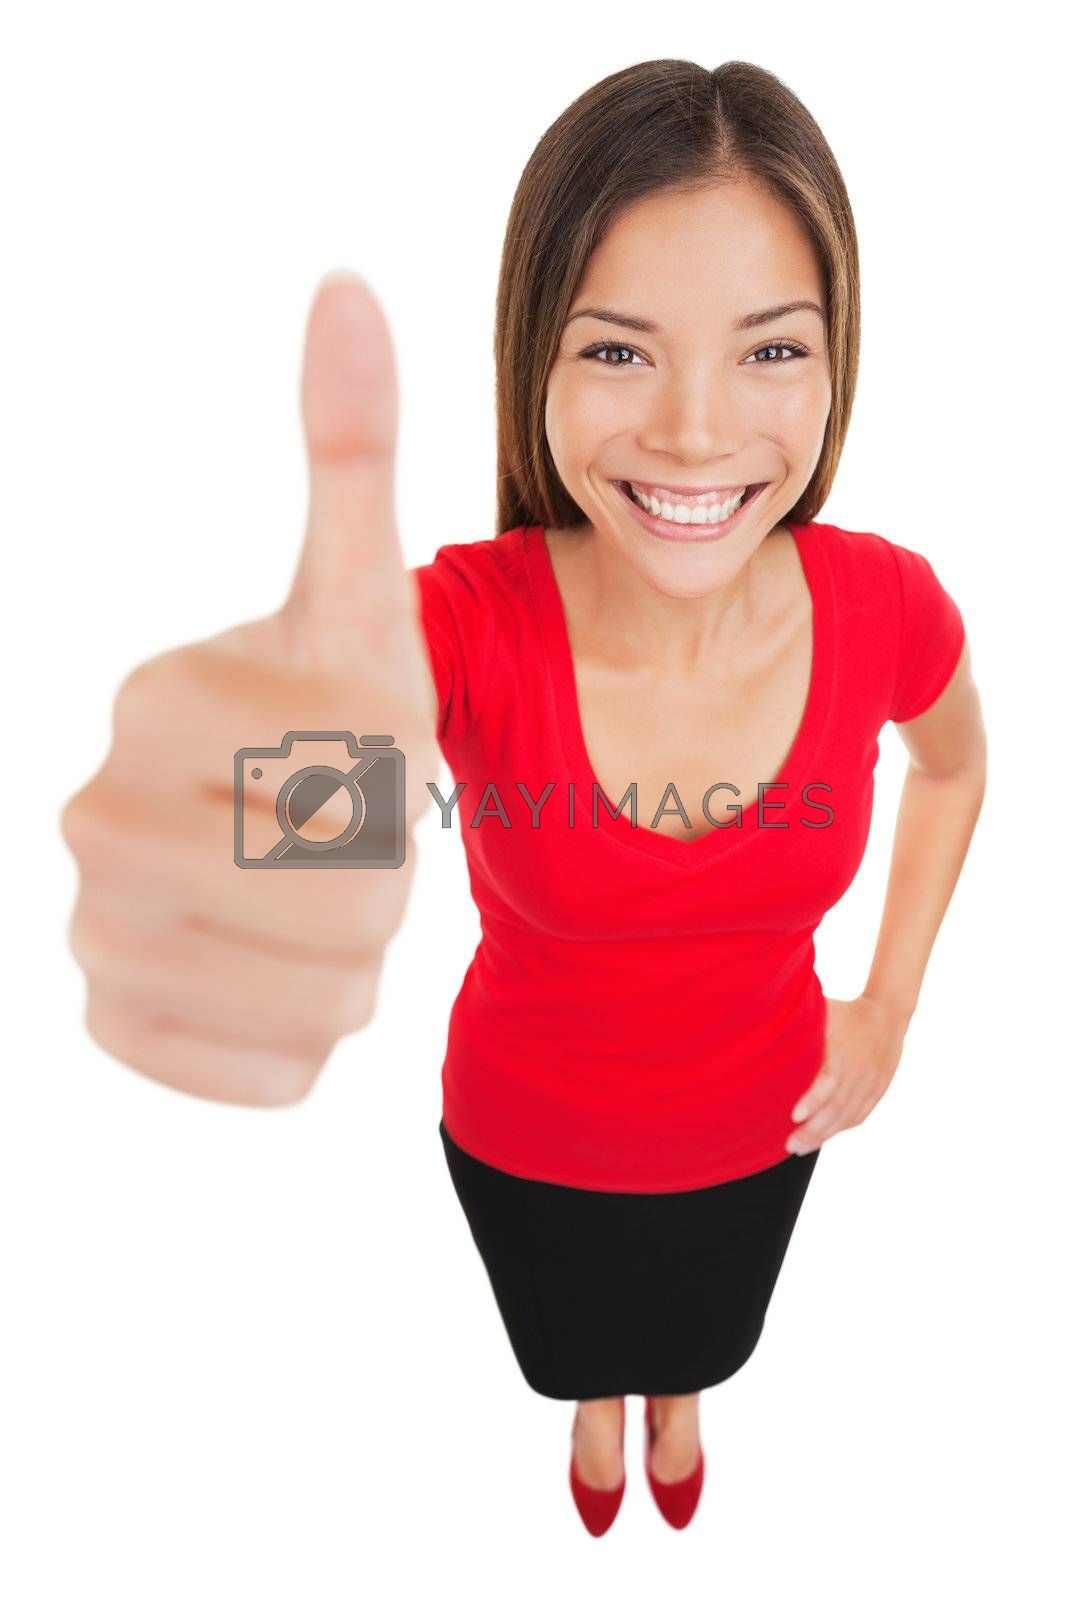 Woman giving thumbs up approval hand sign gesture smiling happy isolated on white background in full body length in high angle perspective view. Content smile on multiracial asian caucasian woman.